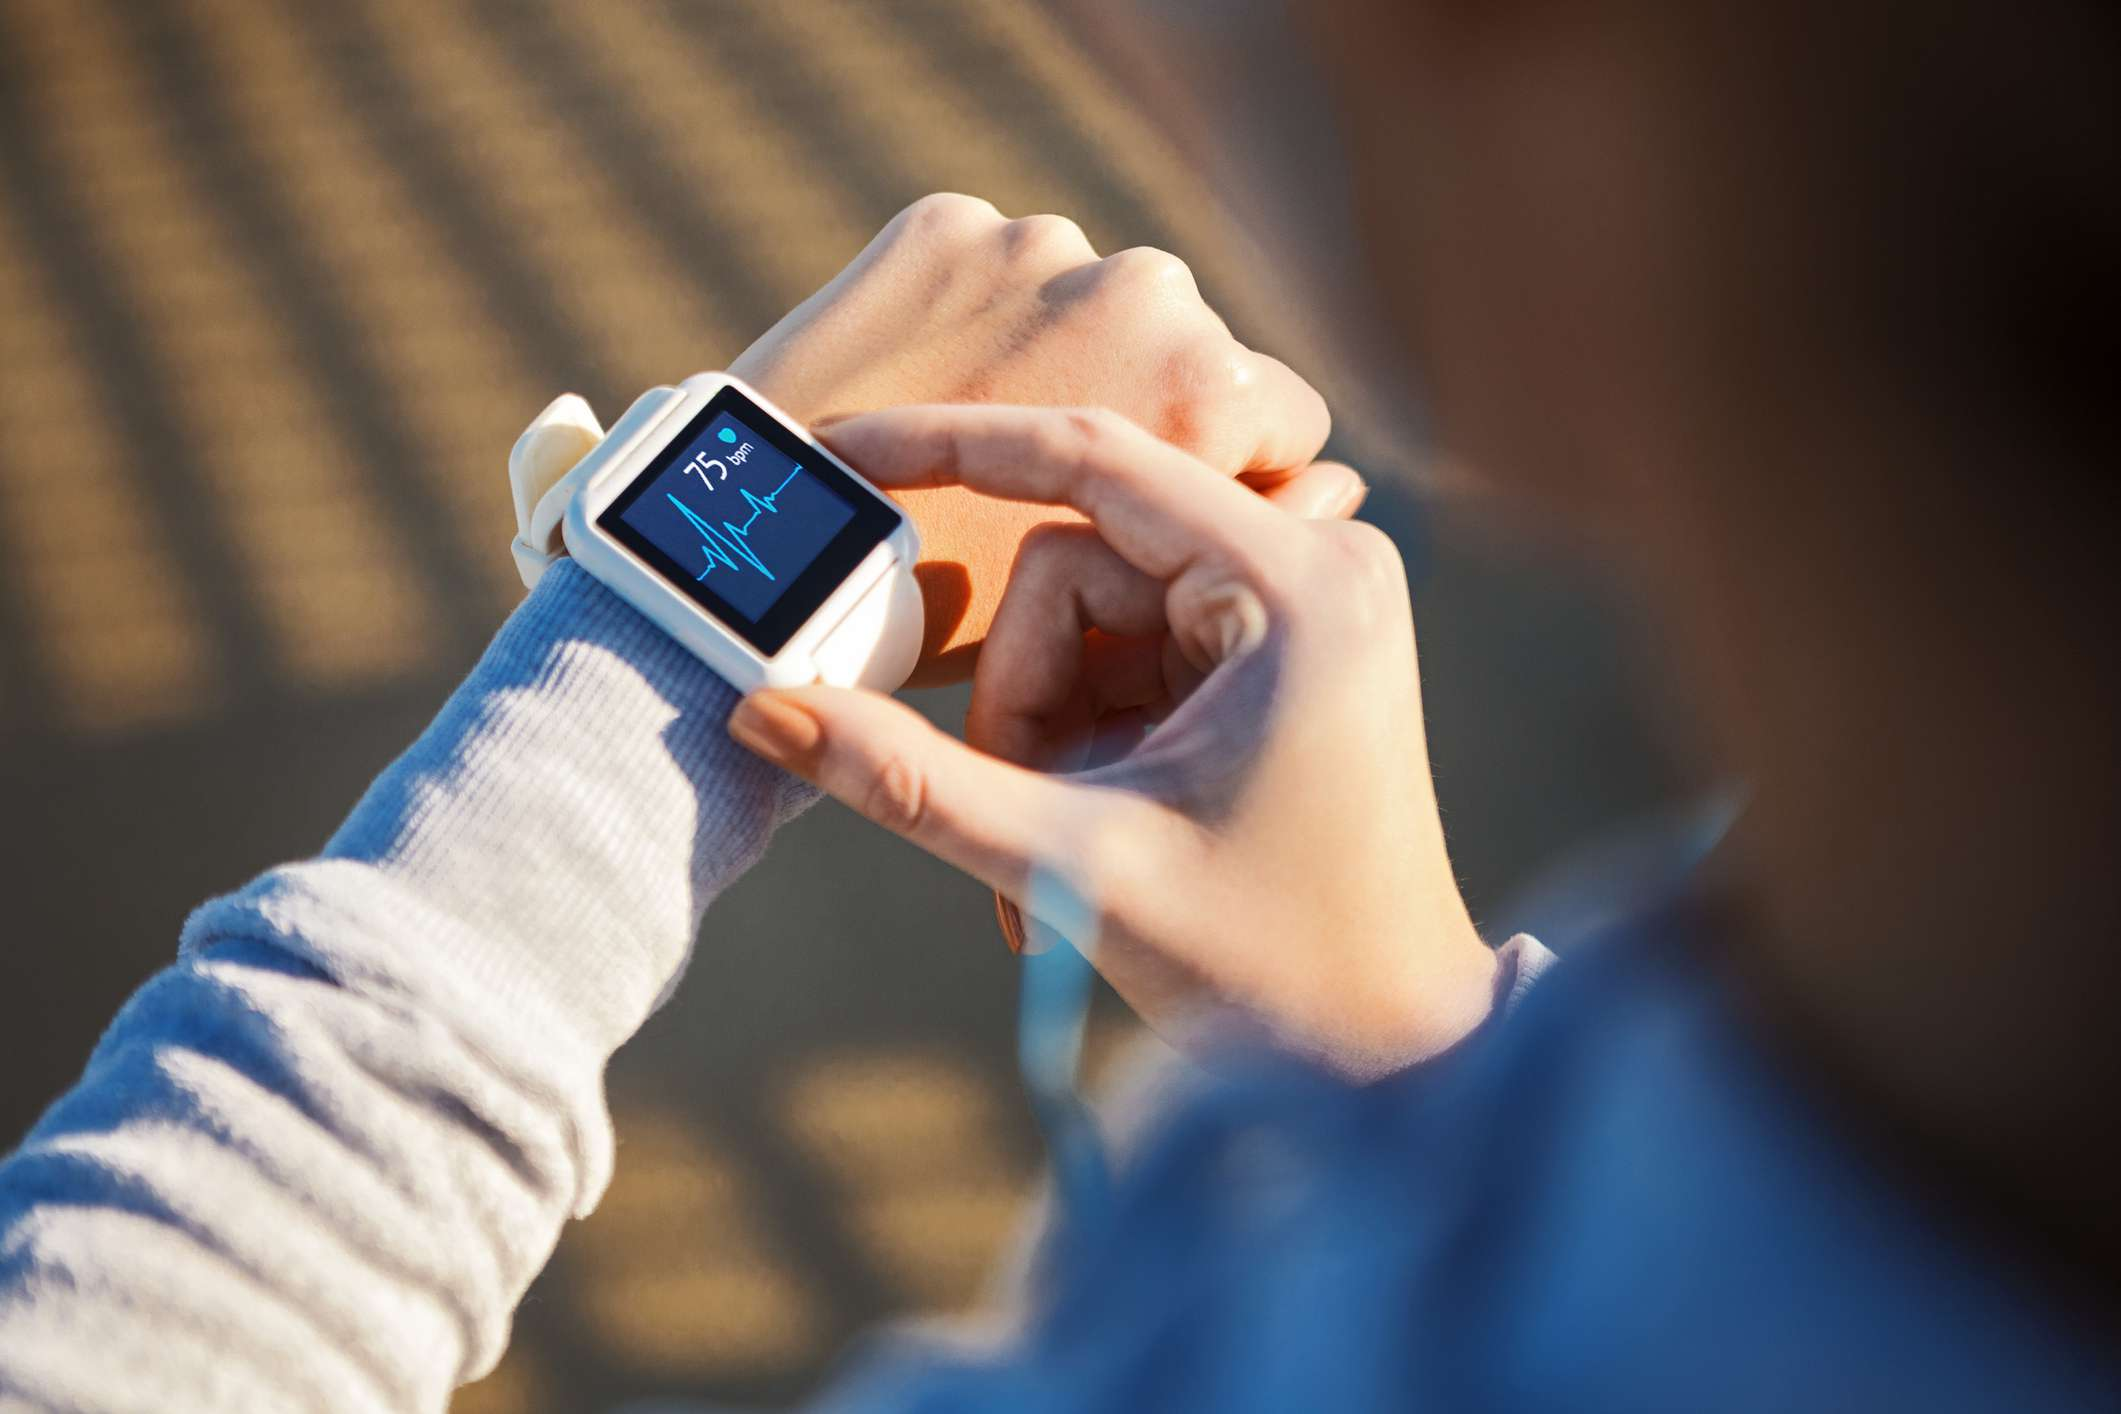 Checking heart rate on a smart watch